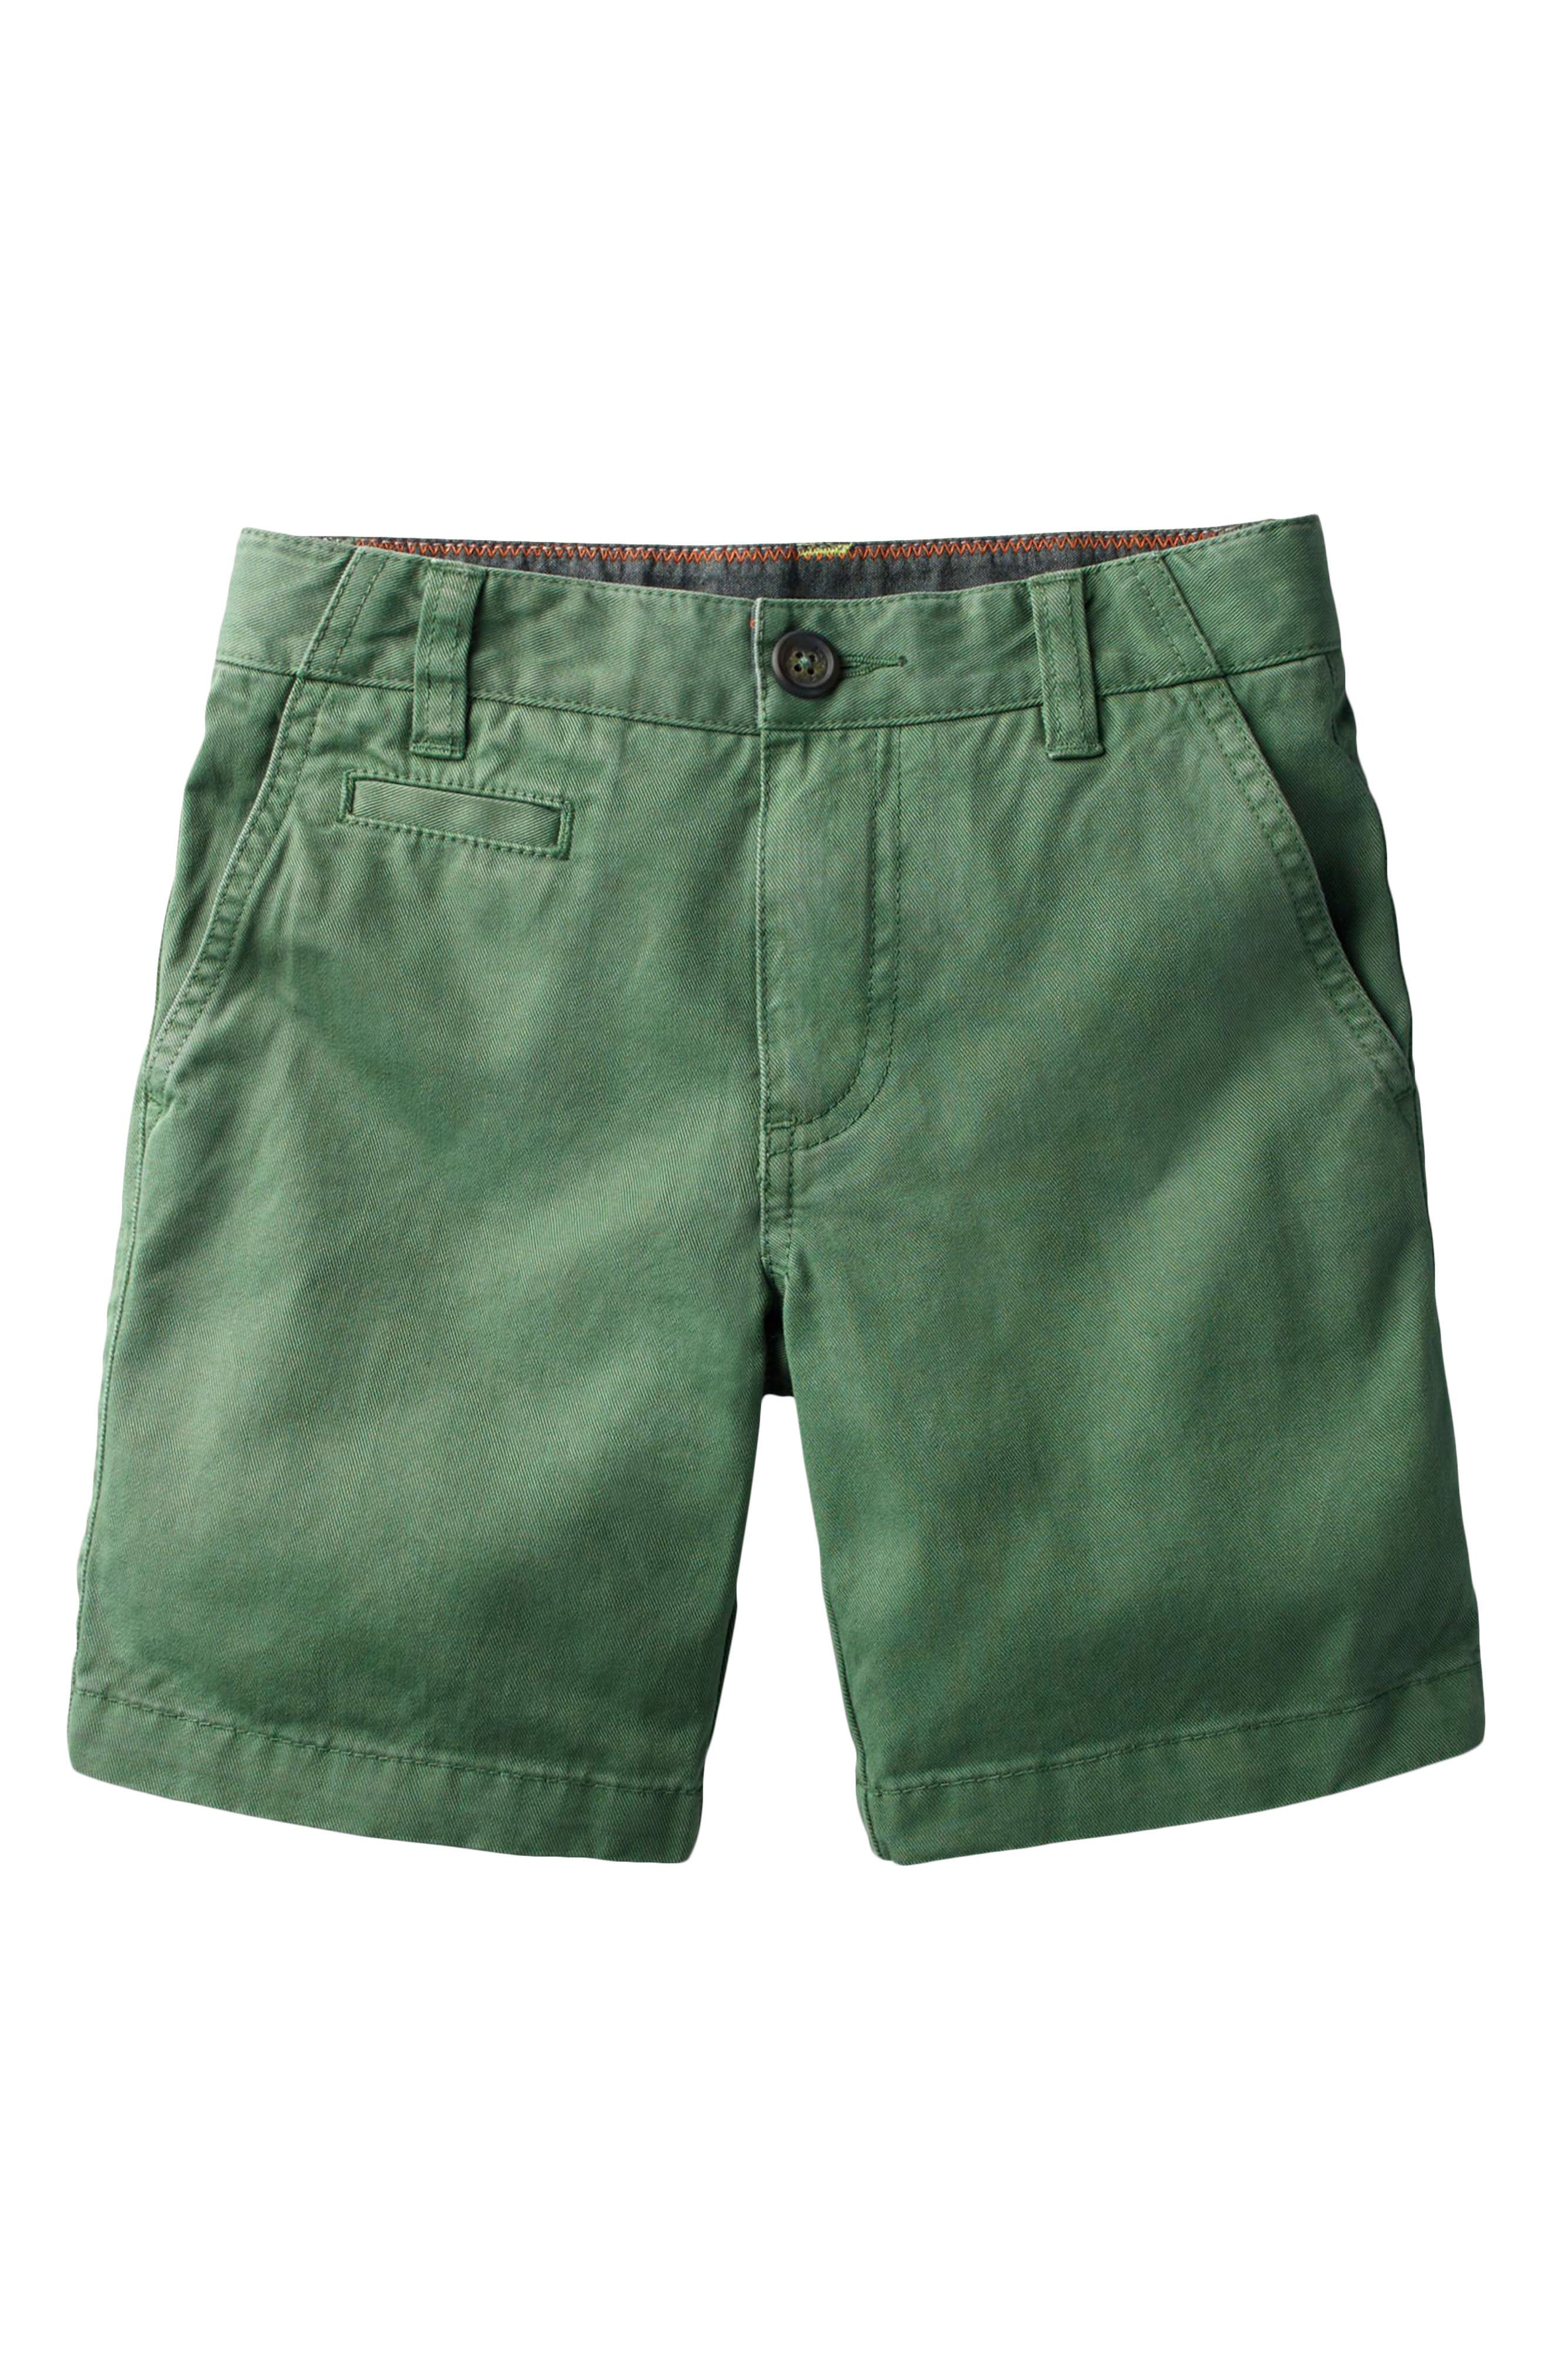 Chino Shorts,                         Main,                         color, Rosemary Green